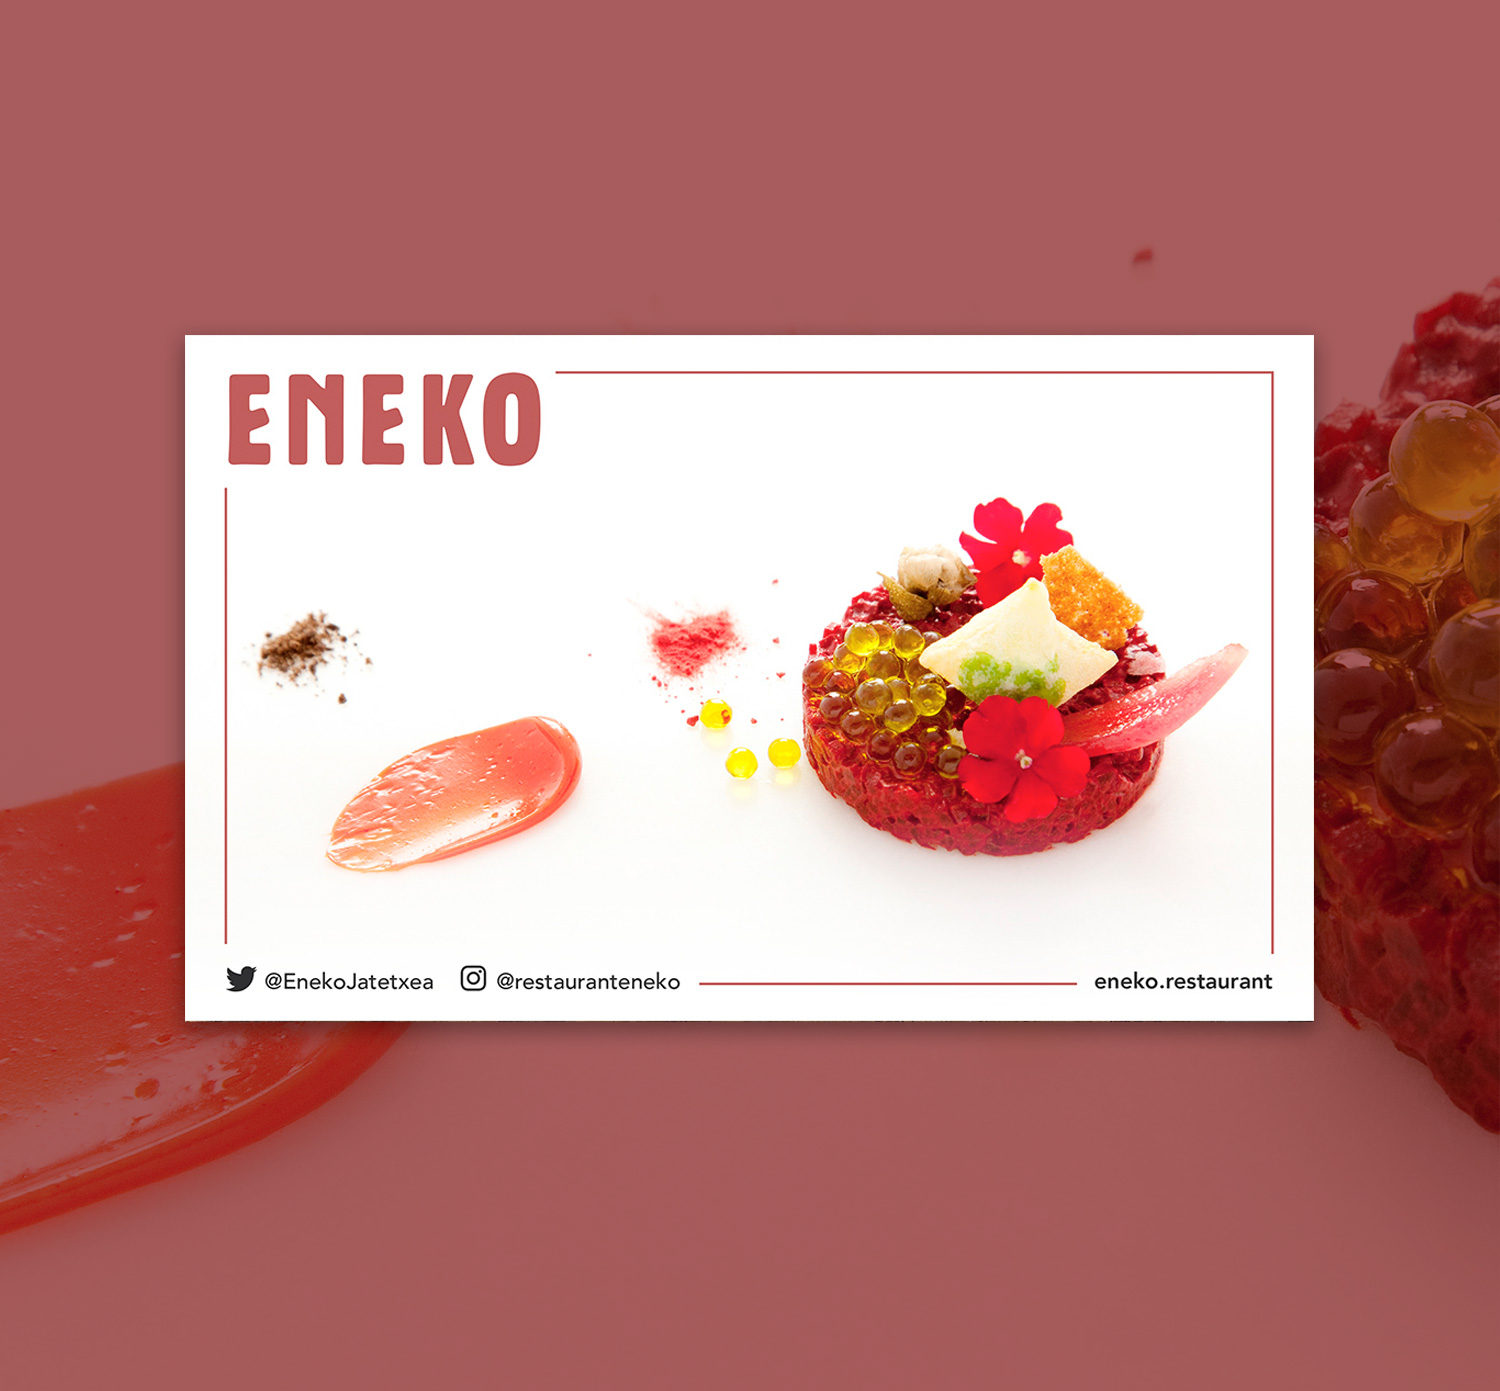 Sutan menu gift card at ENEKO restaurant